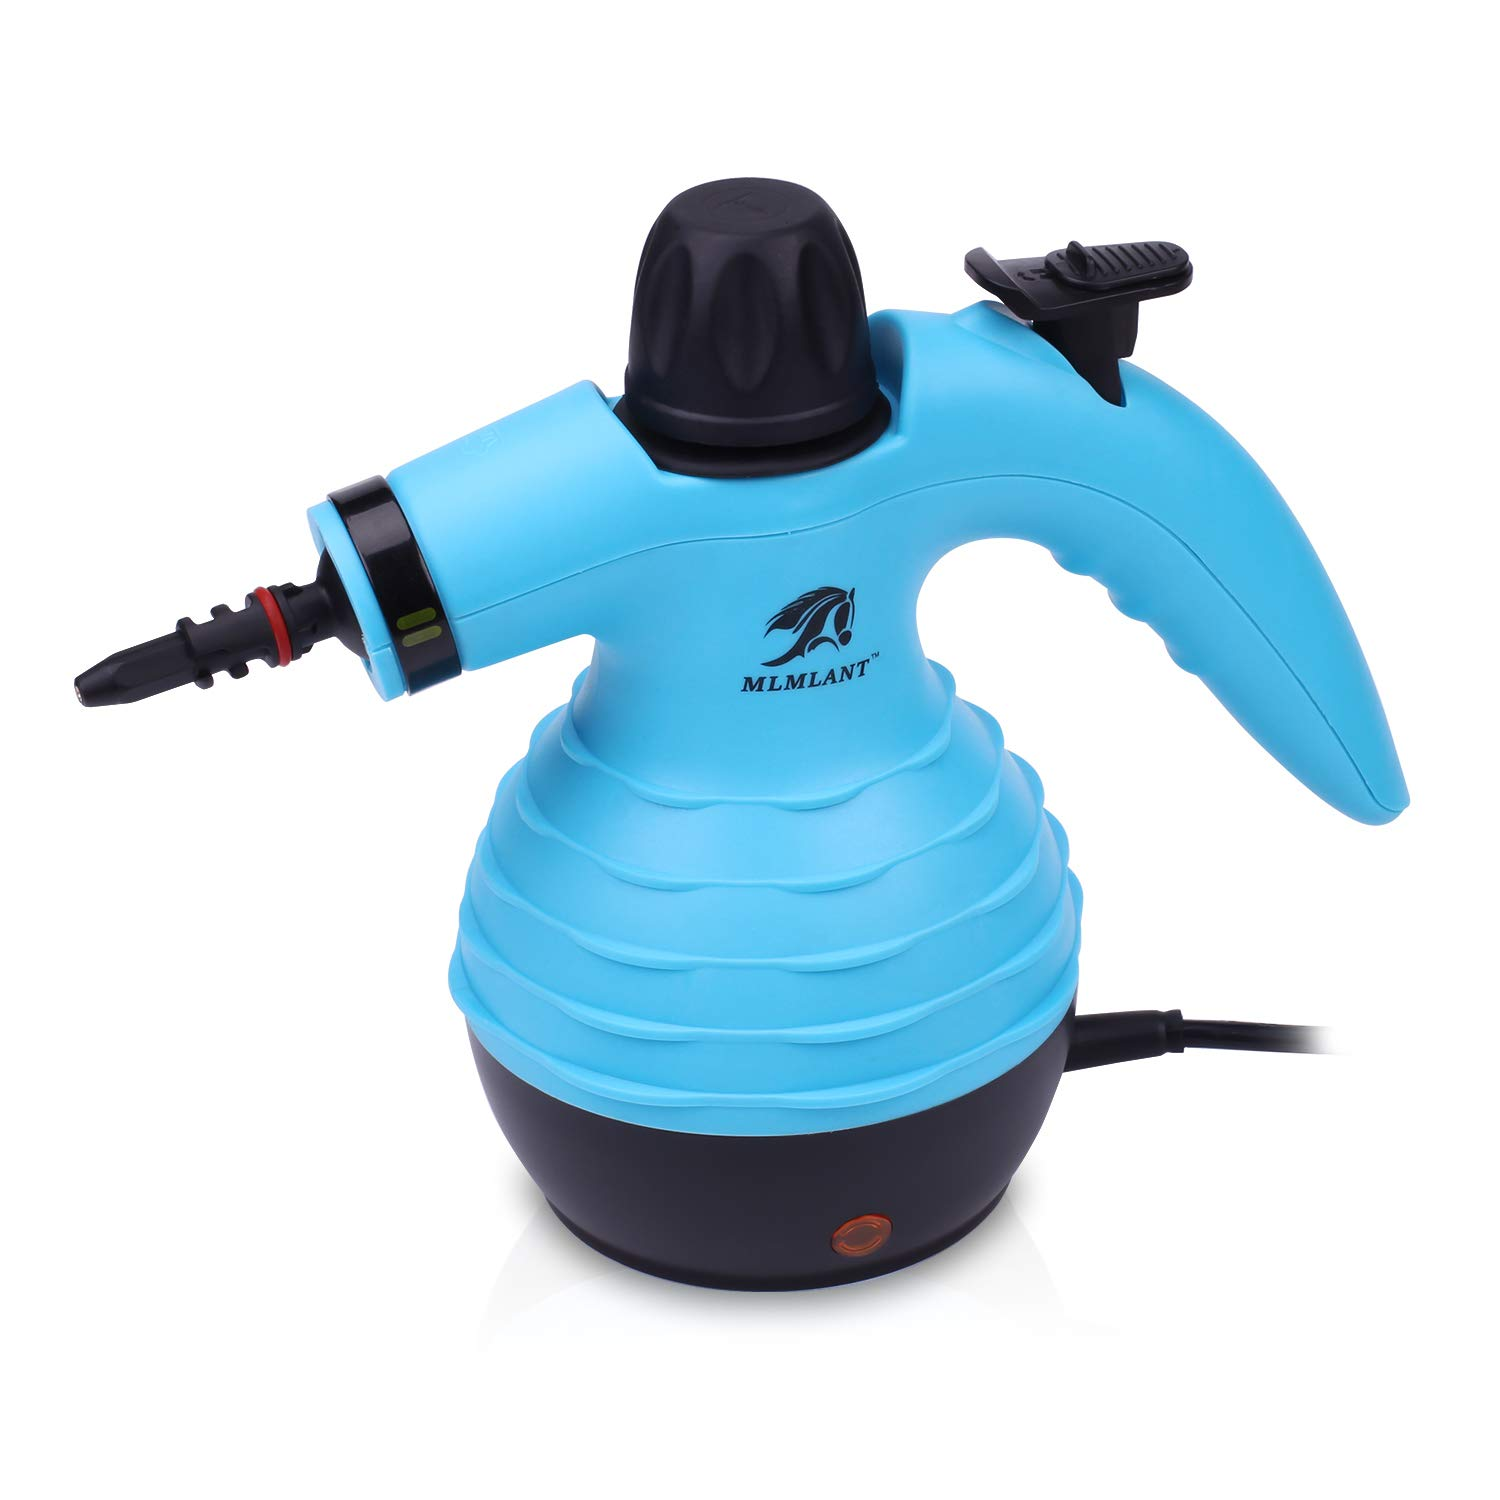 MLMLANT Handheld Pressurized Steam Cleaner 9-Piece Accessory Set - Multi-Purpose Multi-Surface All Natural, Chemical-Free Steam Cleaning Home, Auto, Patio, More Ltd.